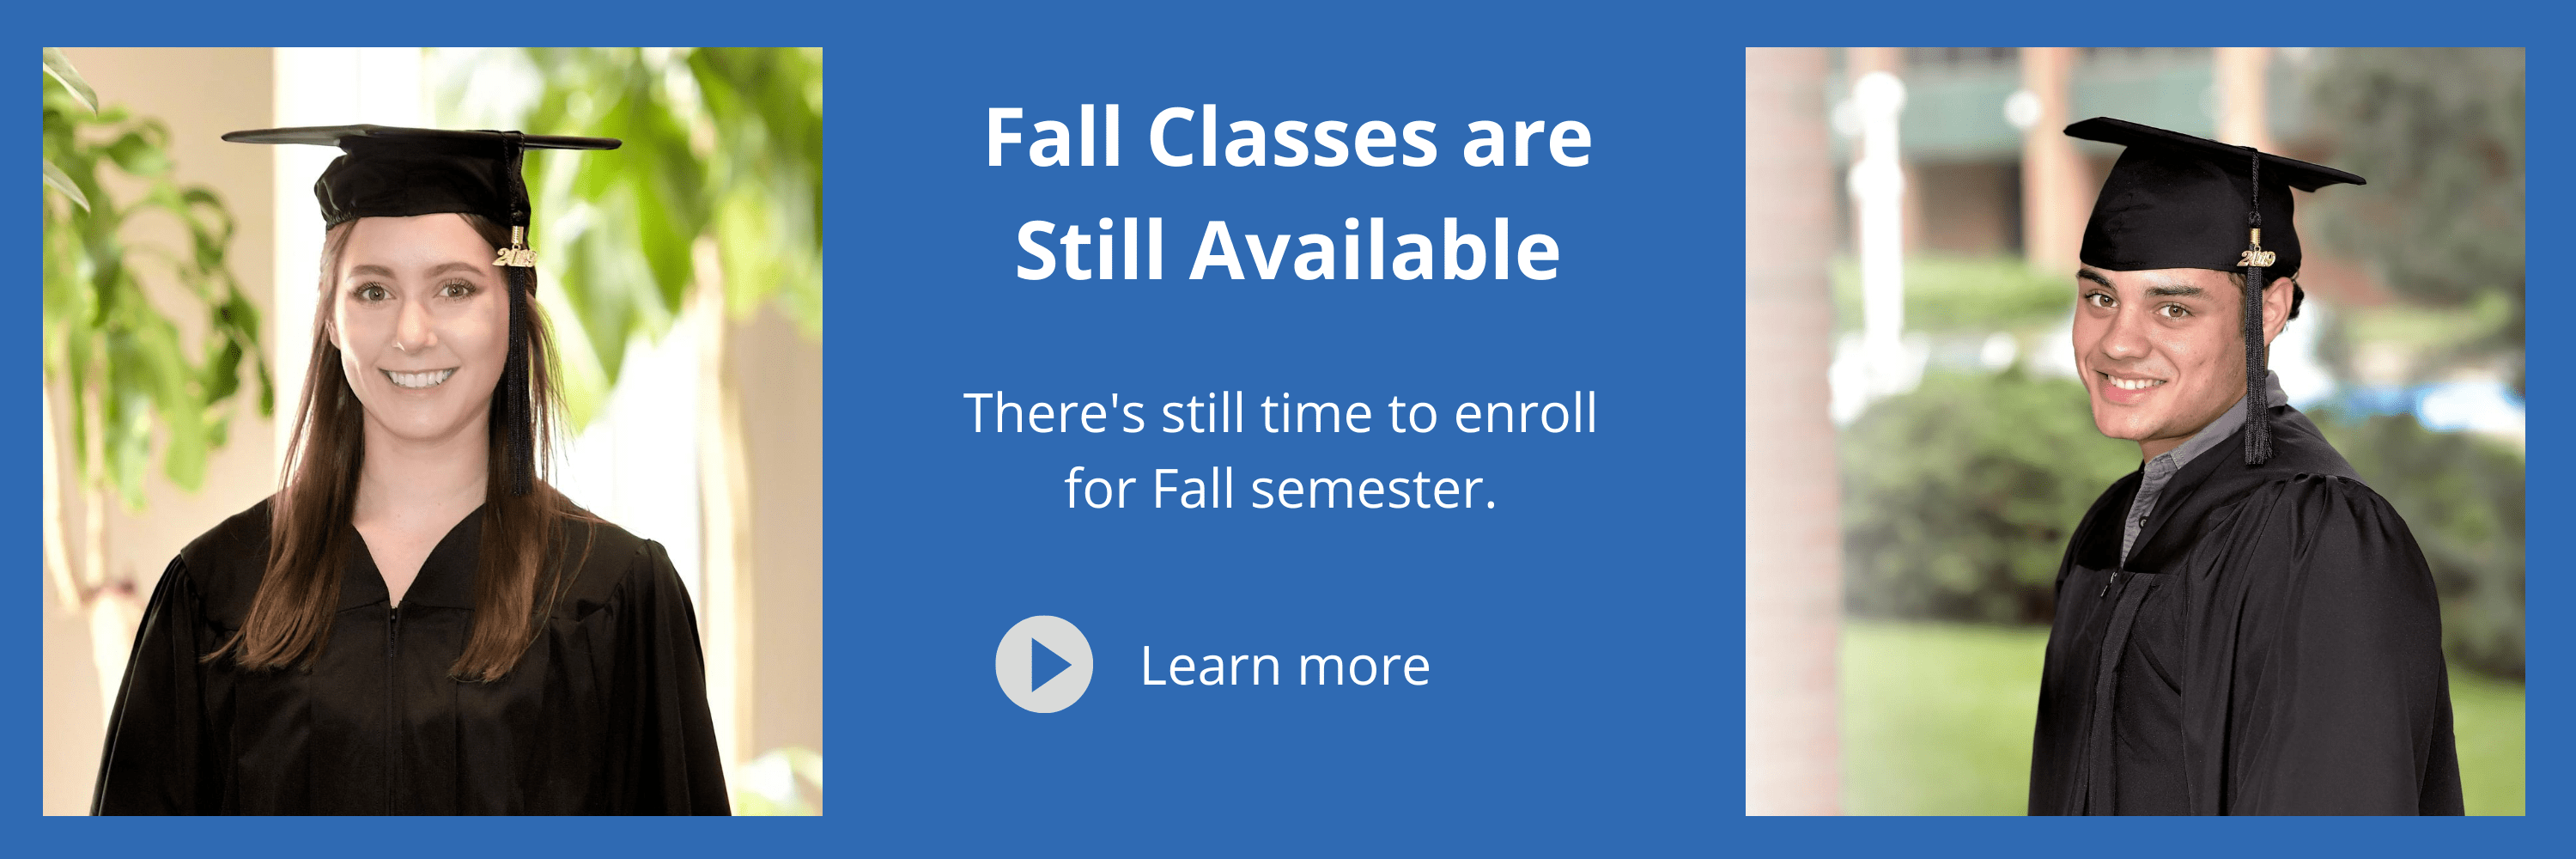 Fall Classes are Still Available